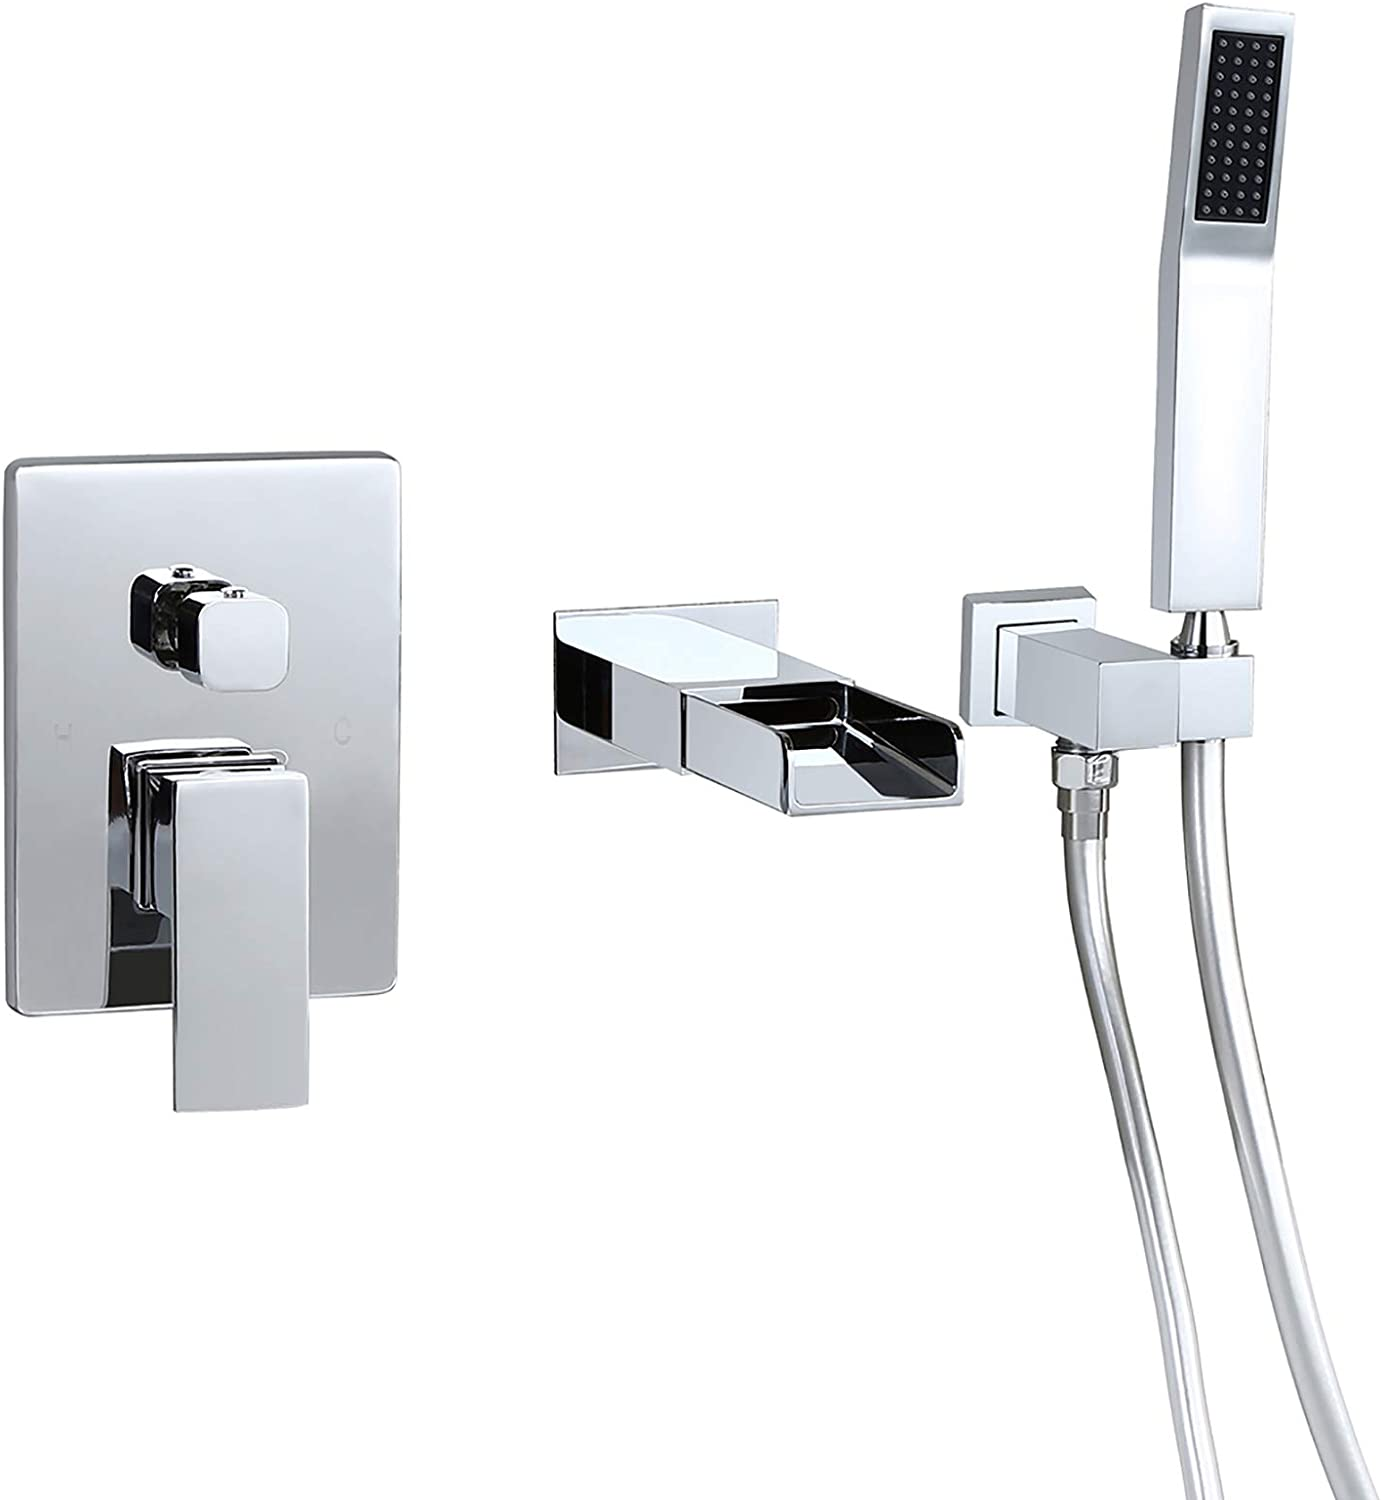 Modern Solid Brass Wall Mounted Tub Filler Spout in Polished Chrome for Bathroom